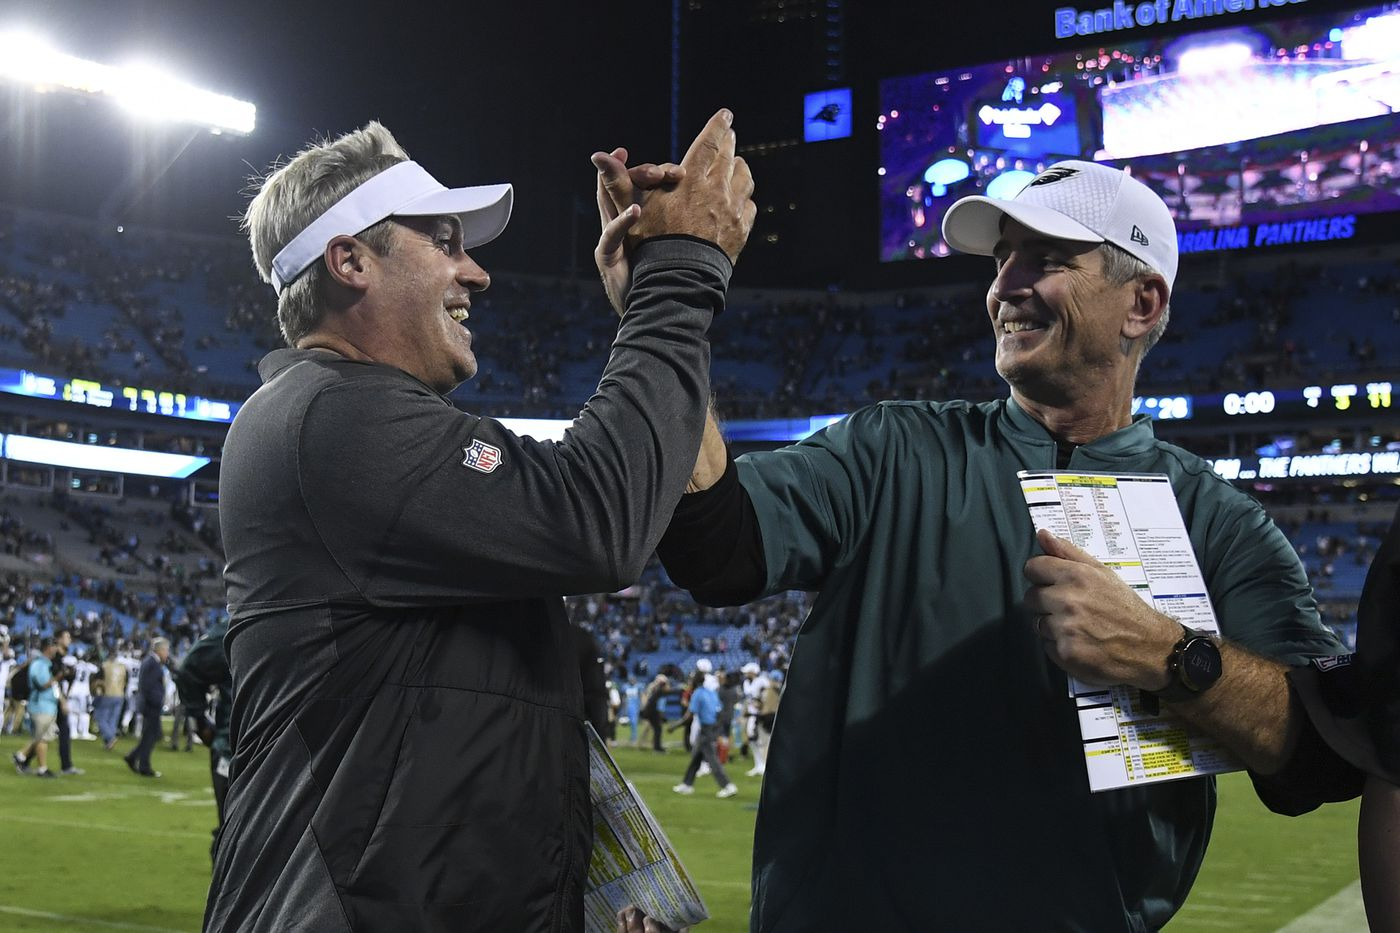 Eagles' biggest hurdle in repeating as Super Bowl champs will be overcoming loss of Frank Reich, John DeFilippo | Marcus Hayes